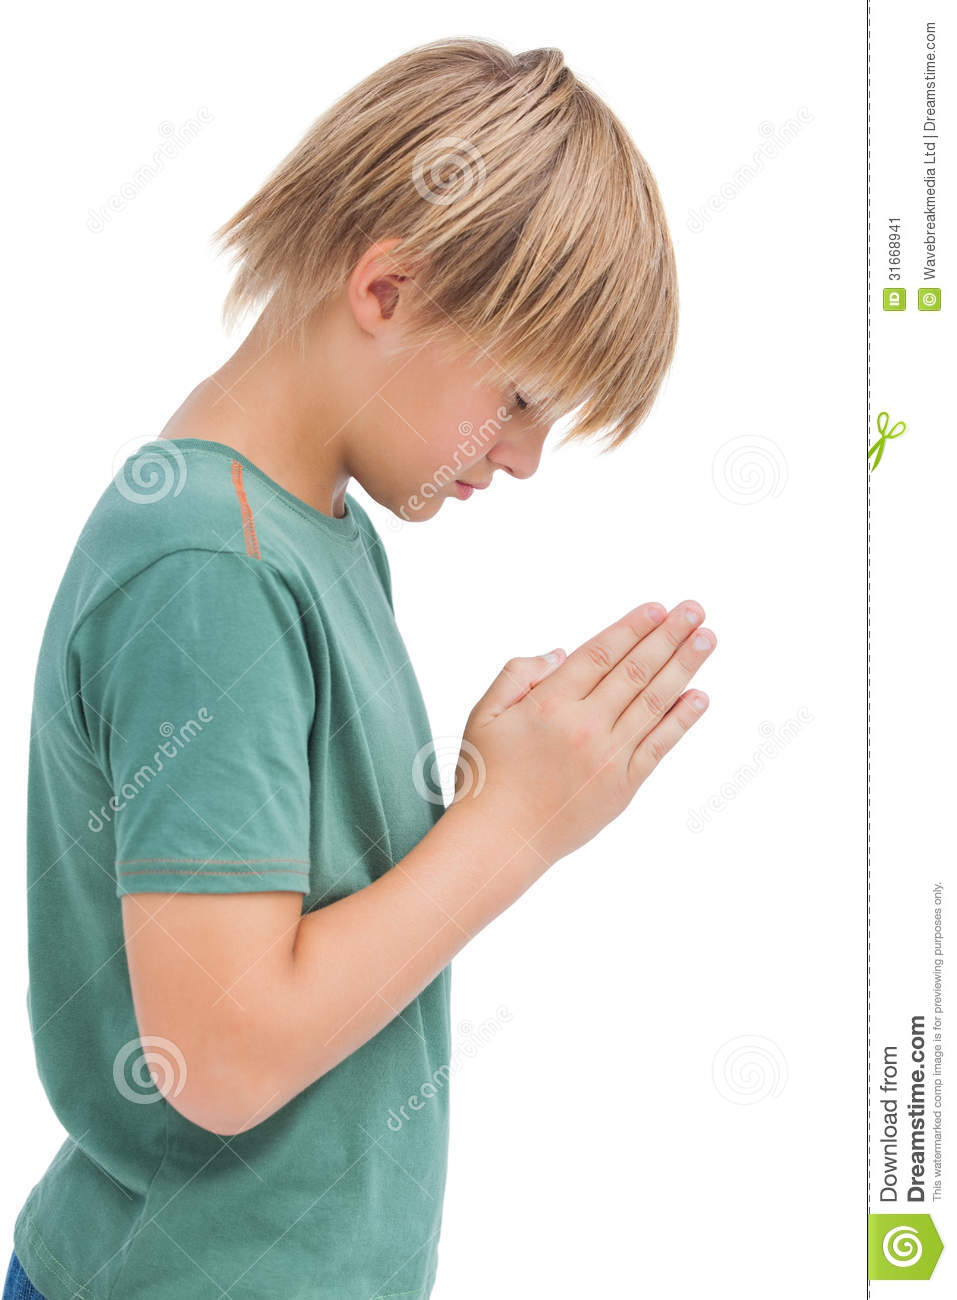 Little Boy Praying With Bowed Head Stock Image - Image: 31668941